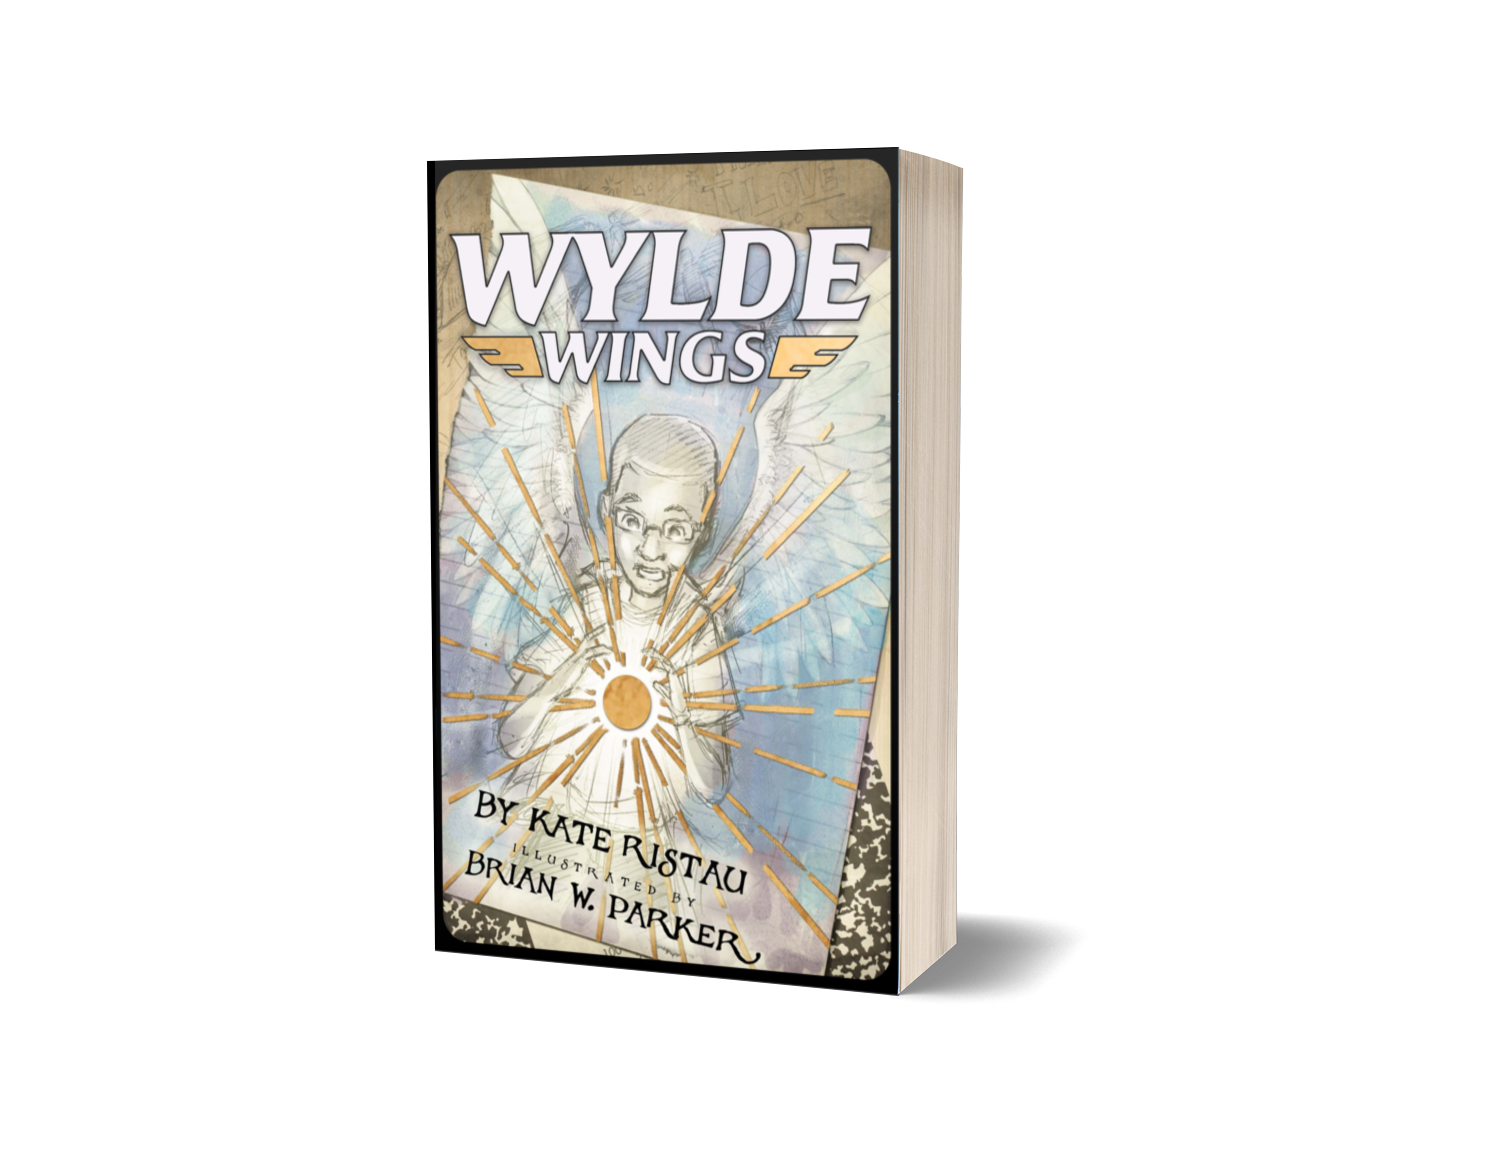 Wylde Wings book cover with POC boy holding a golden spark, sketched wings in the background, and notebooks